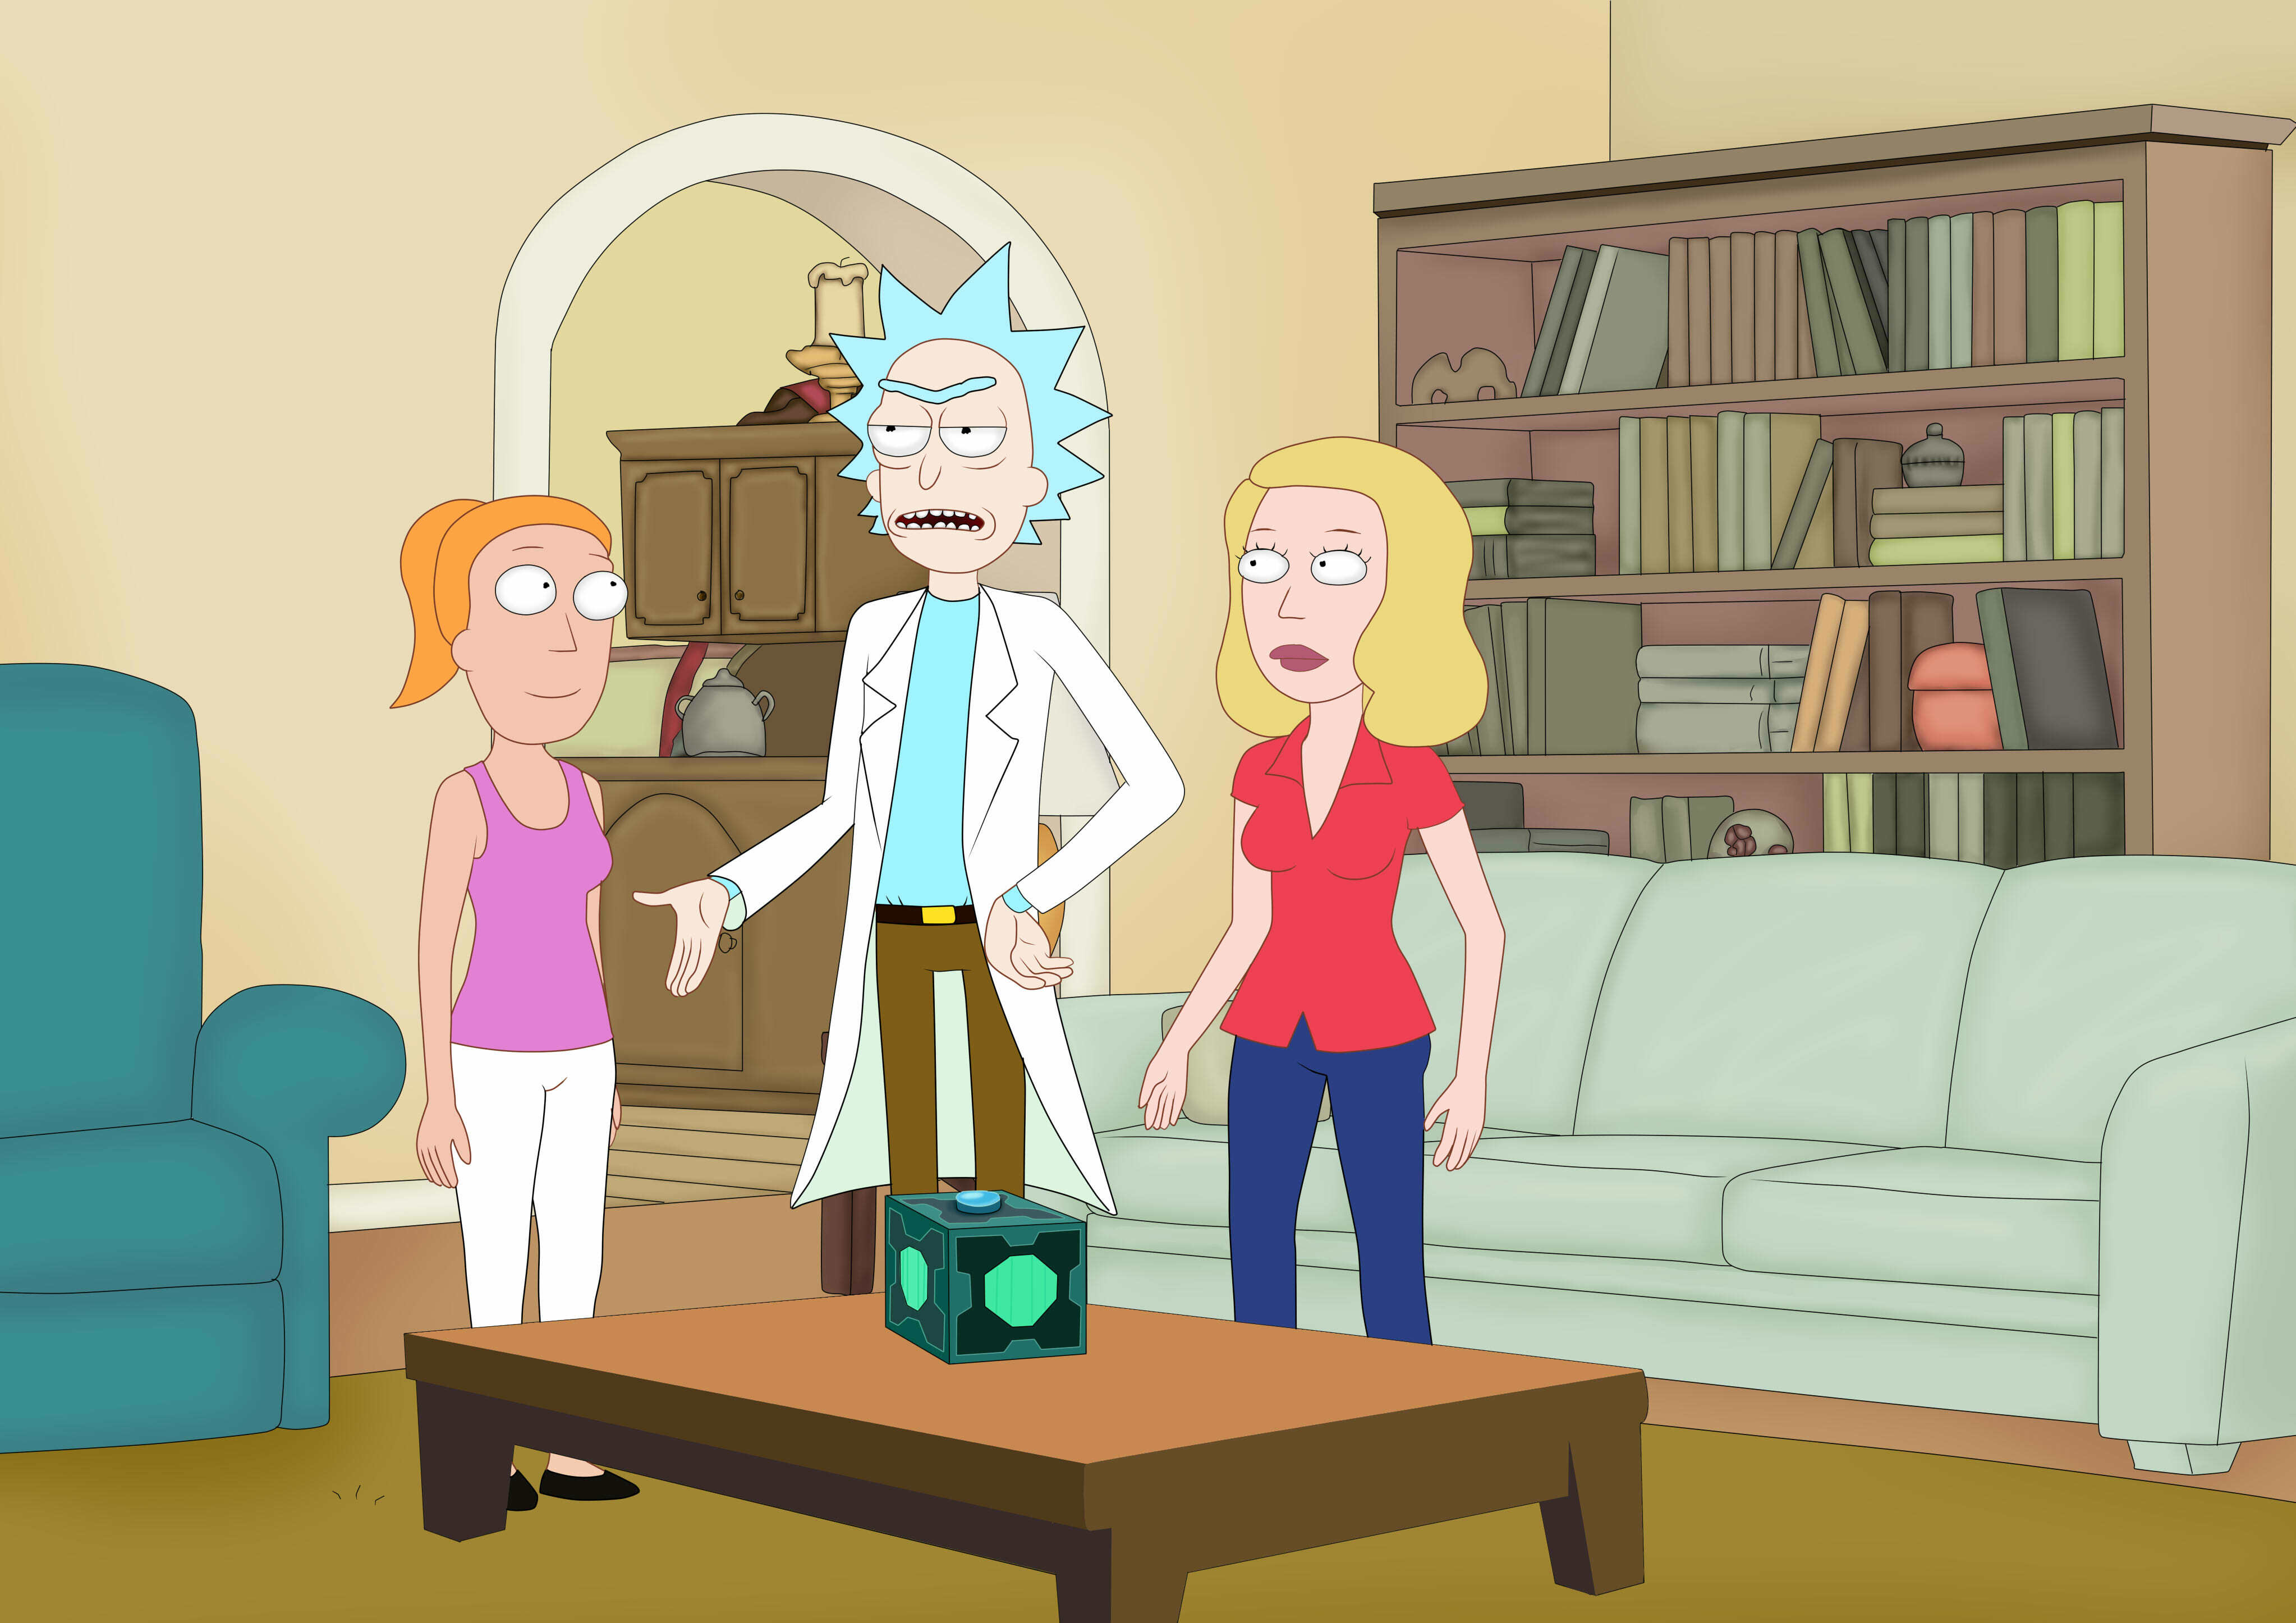 rick and morty (Beth and Summer)